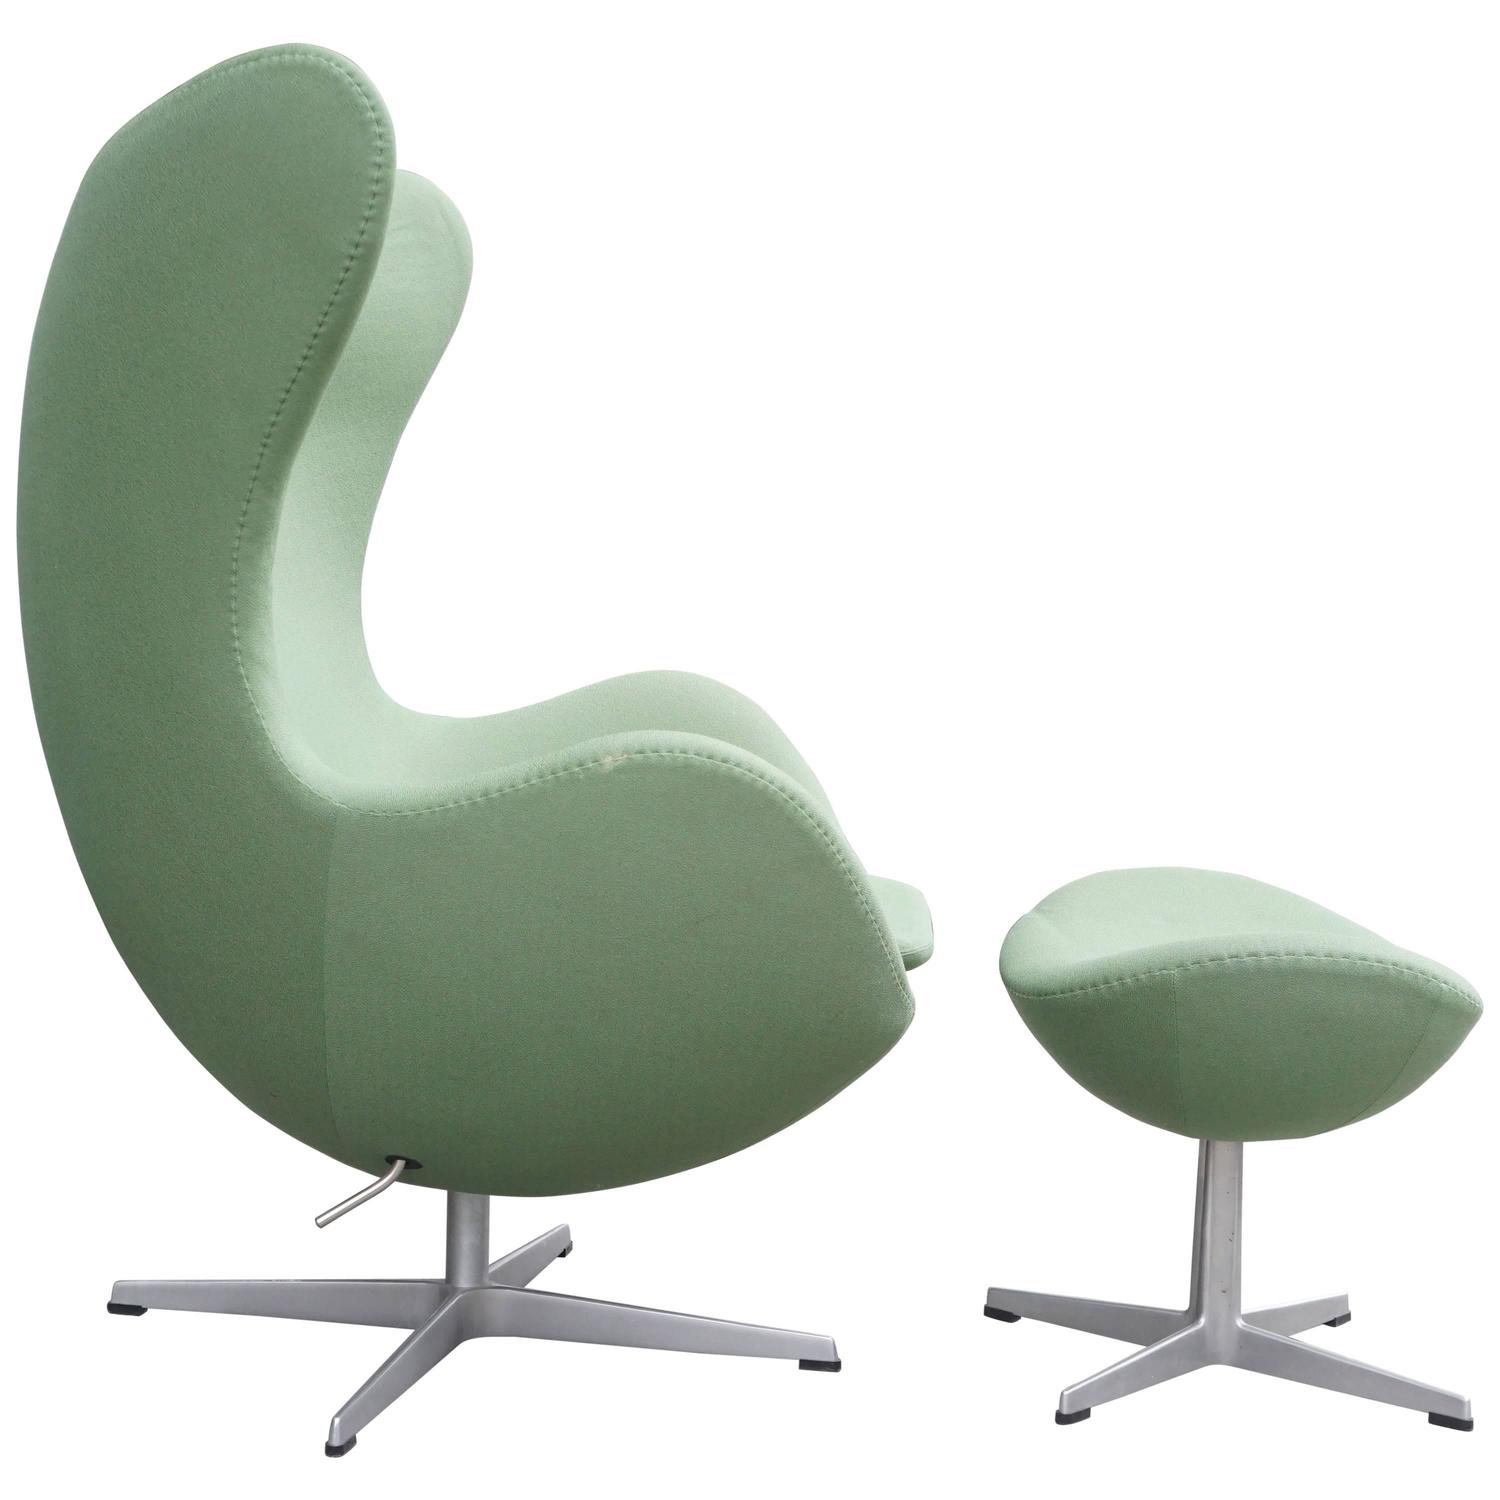 Arne jacobsen egg chair with ottoman at 1stdibs for Egg chair jacobsen